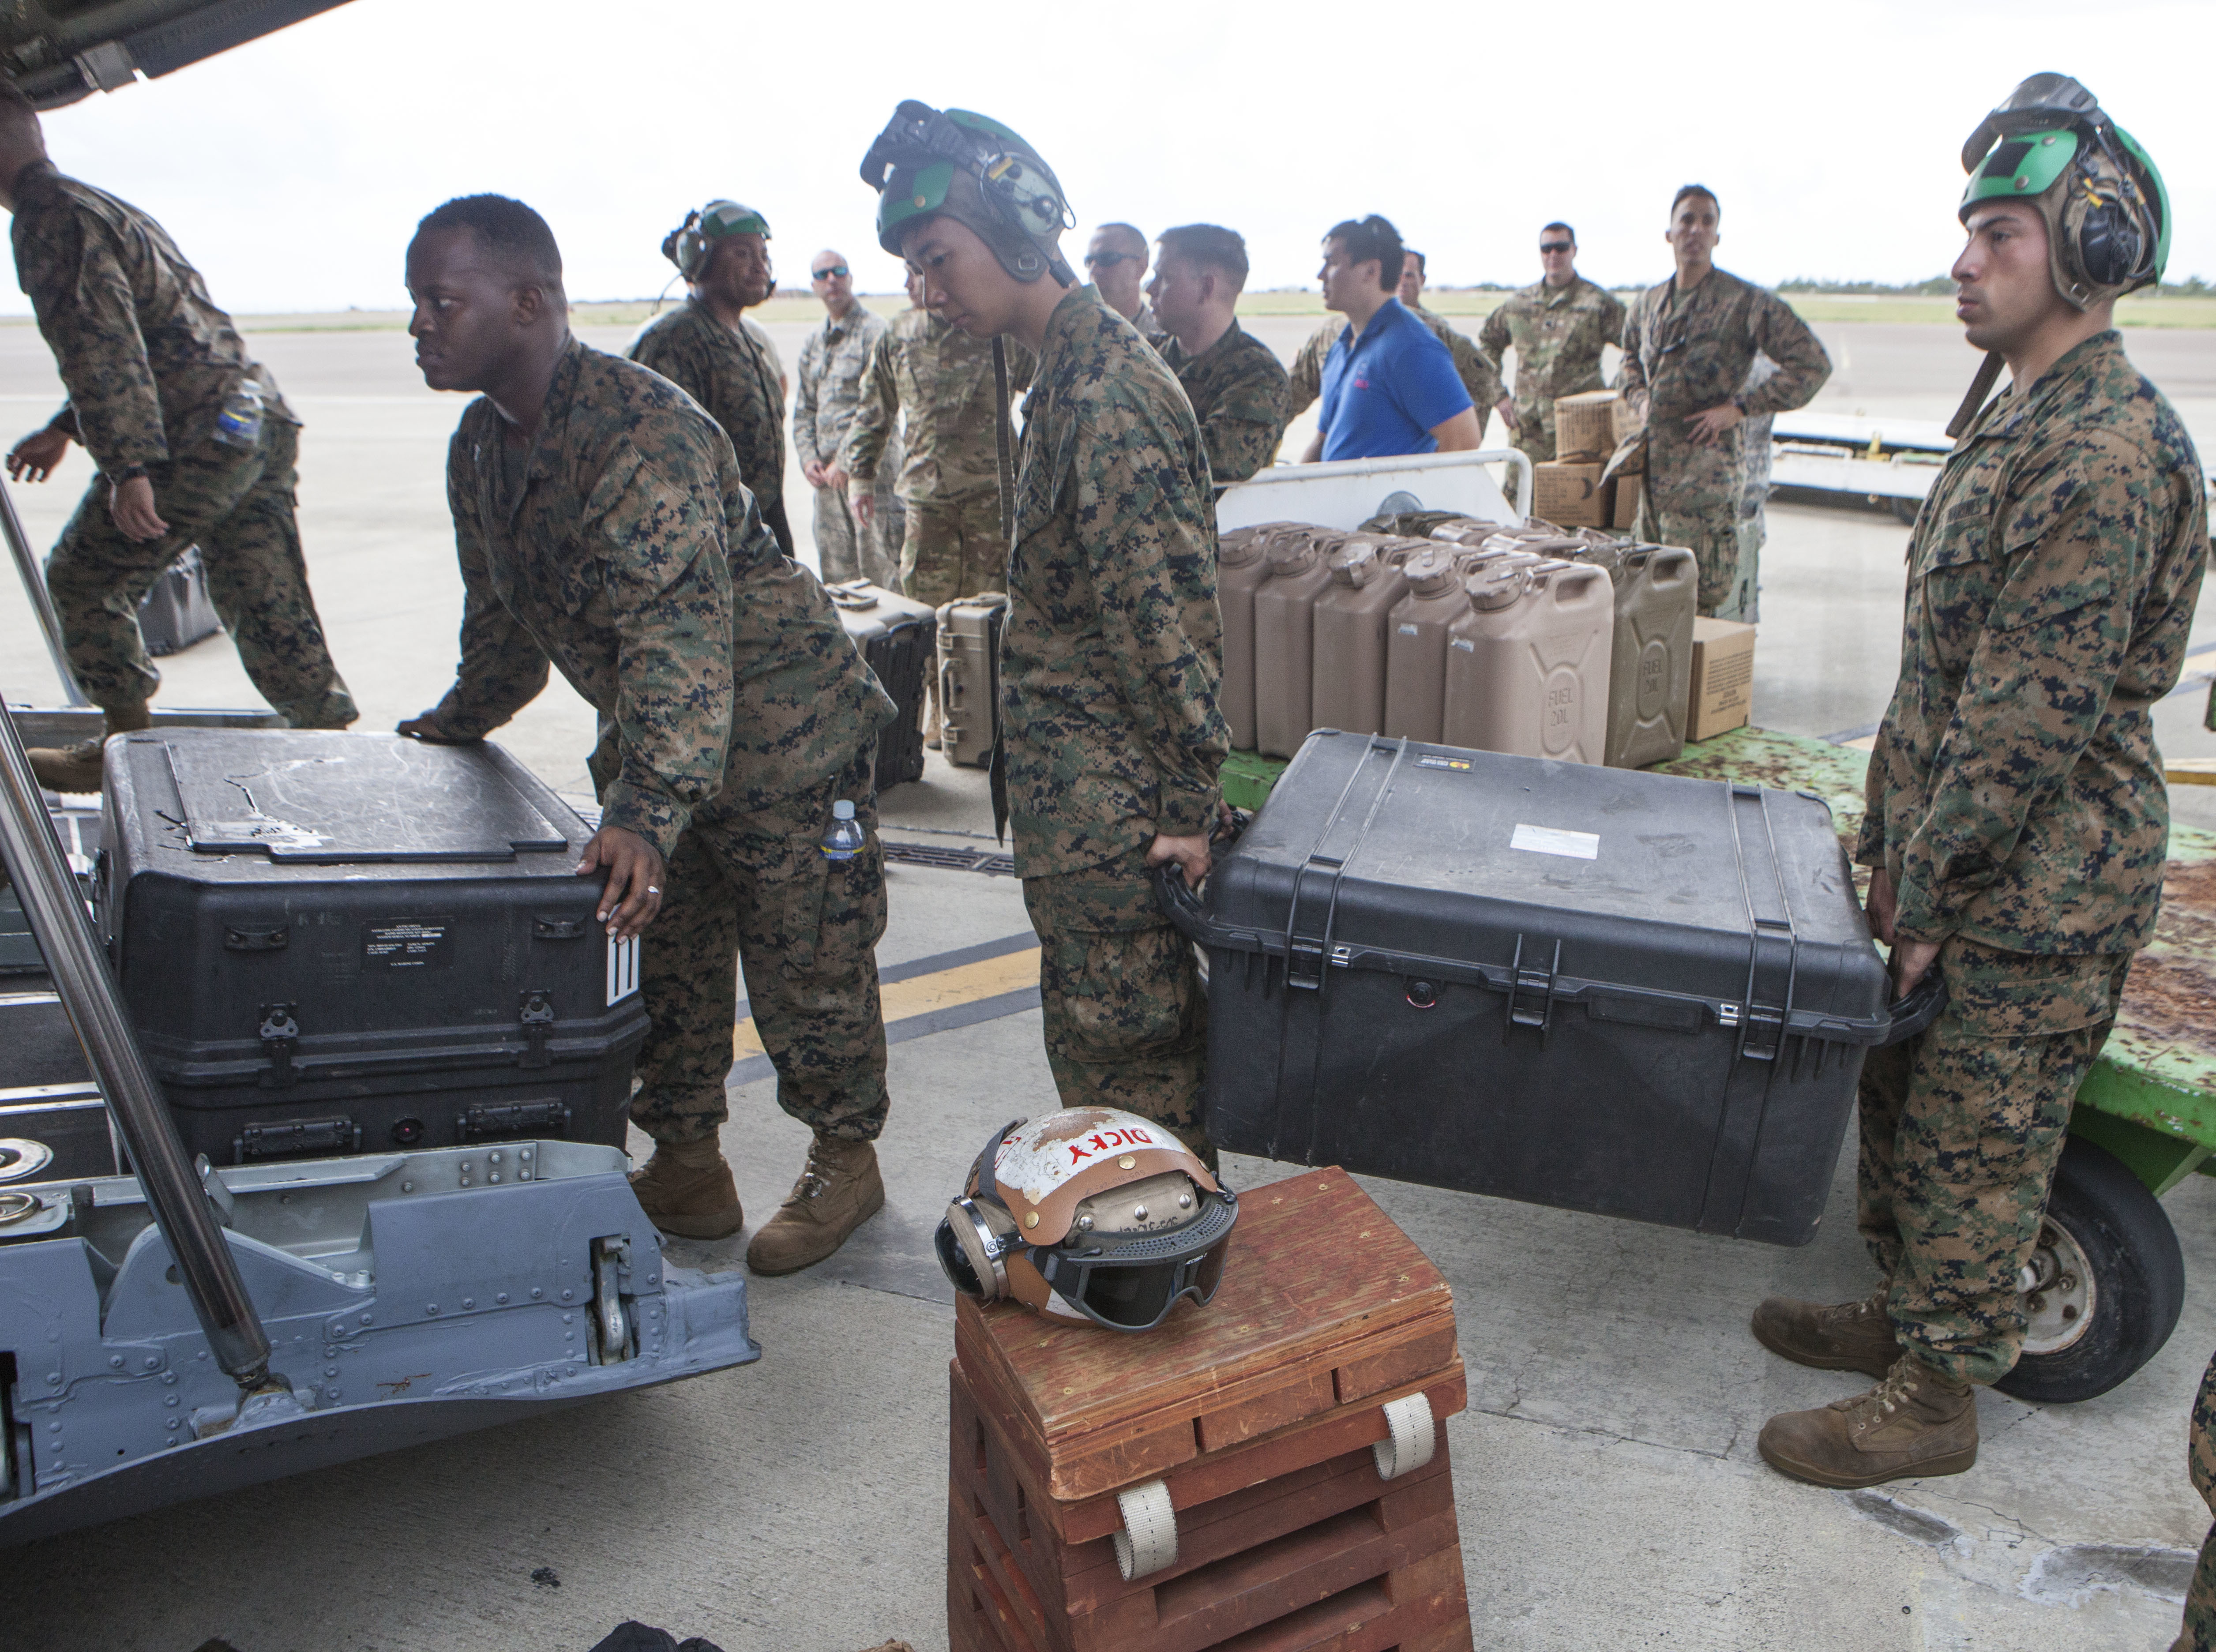 U.S. Marines with Special Purpose Marine Air-Ground Task Force - Southern Command and soldiers from 1st Battalion, 228th Aviation Regiment load an Ohio Air National Guard C-130H Hercules in preparation to depart their prepositioned location of Kingston, Jamaica, for Port-au-Prince, Haiti, to support the humanitarian assistance and disaster relief effort in response to Hurricane Matthew, Oct. 5, 2016. US Marine Corps photo.